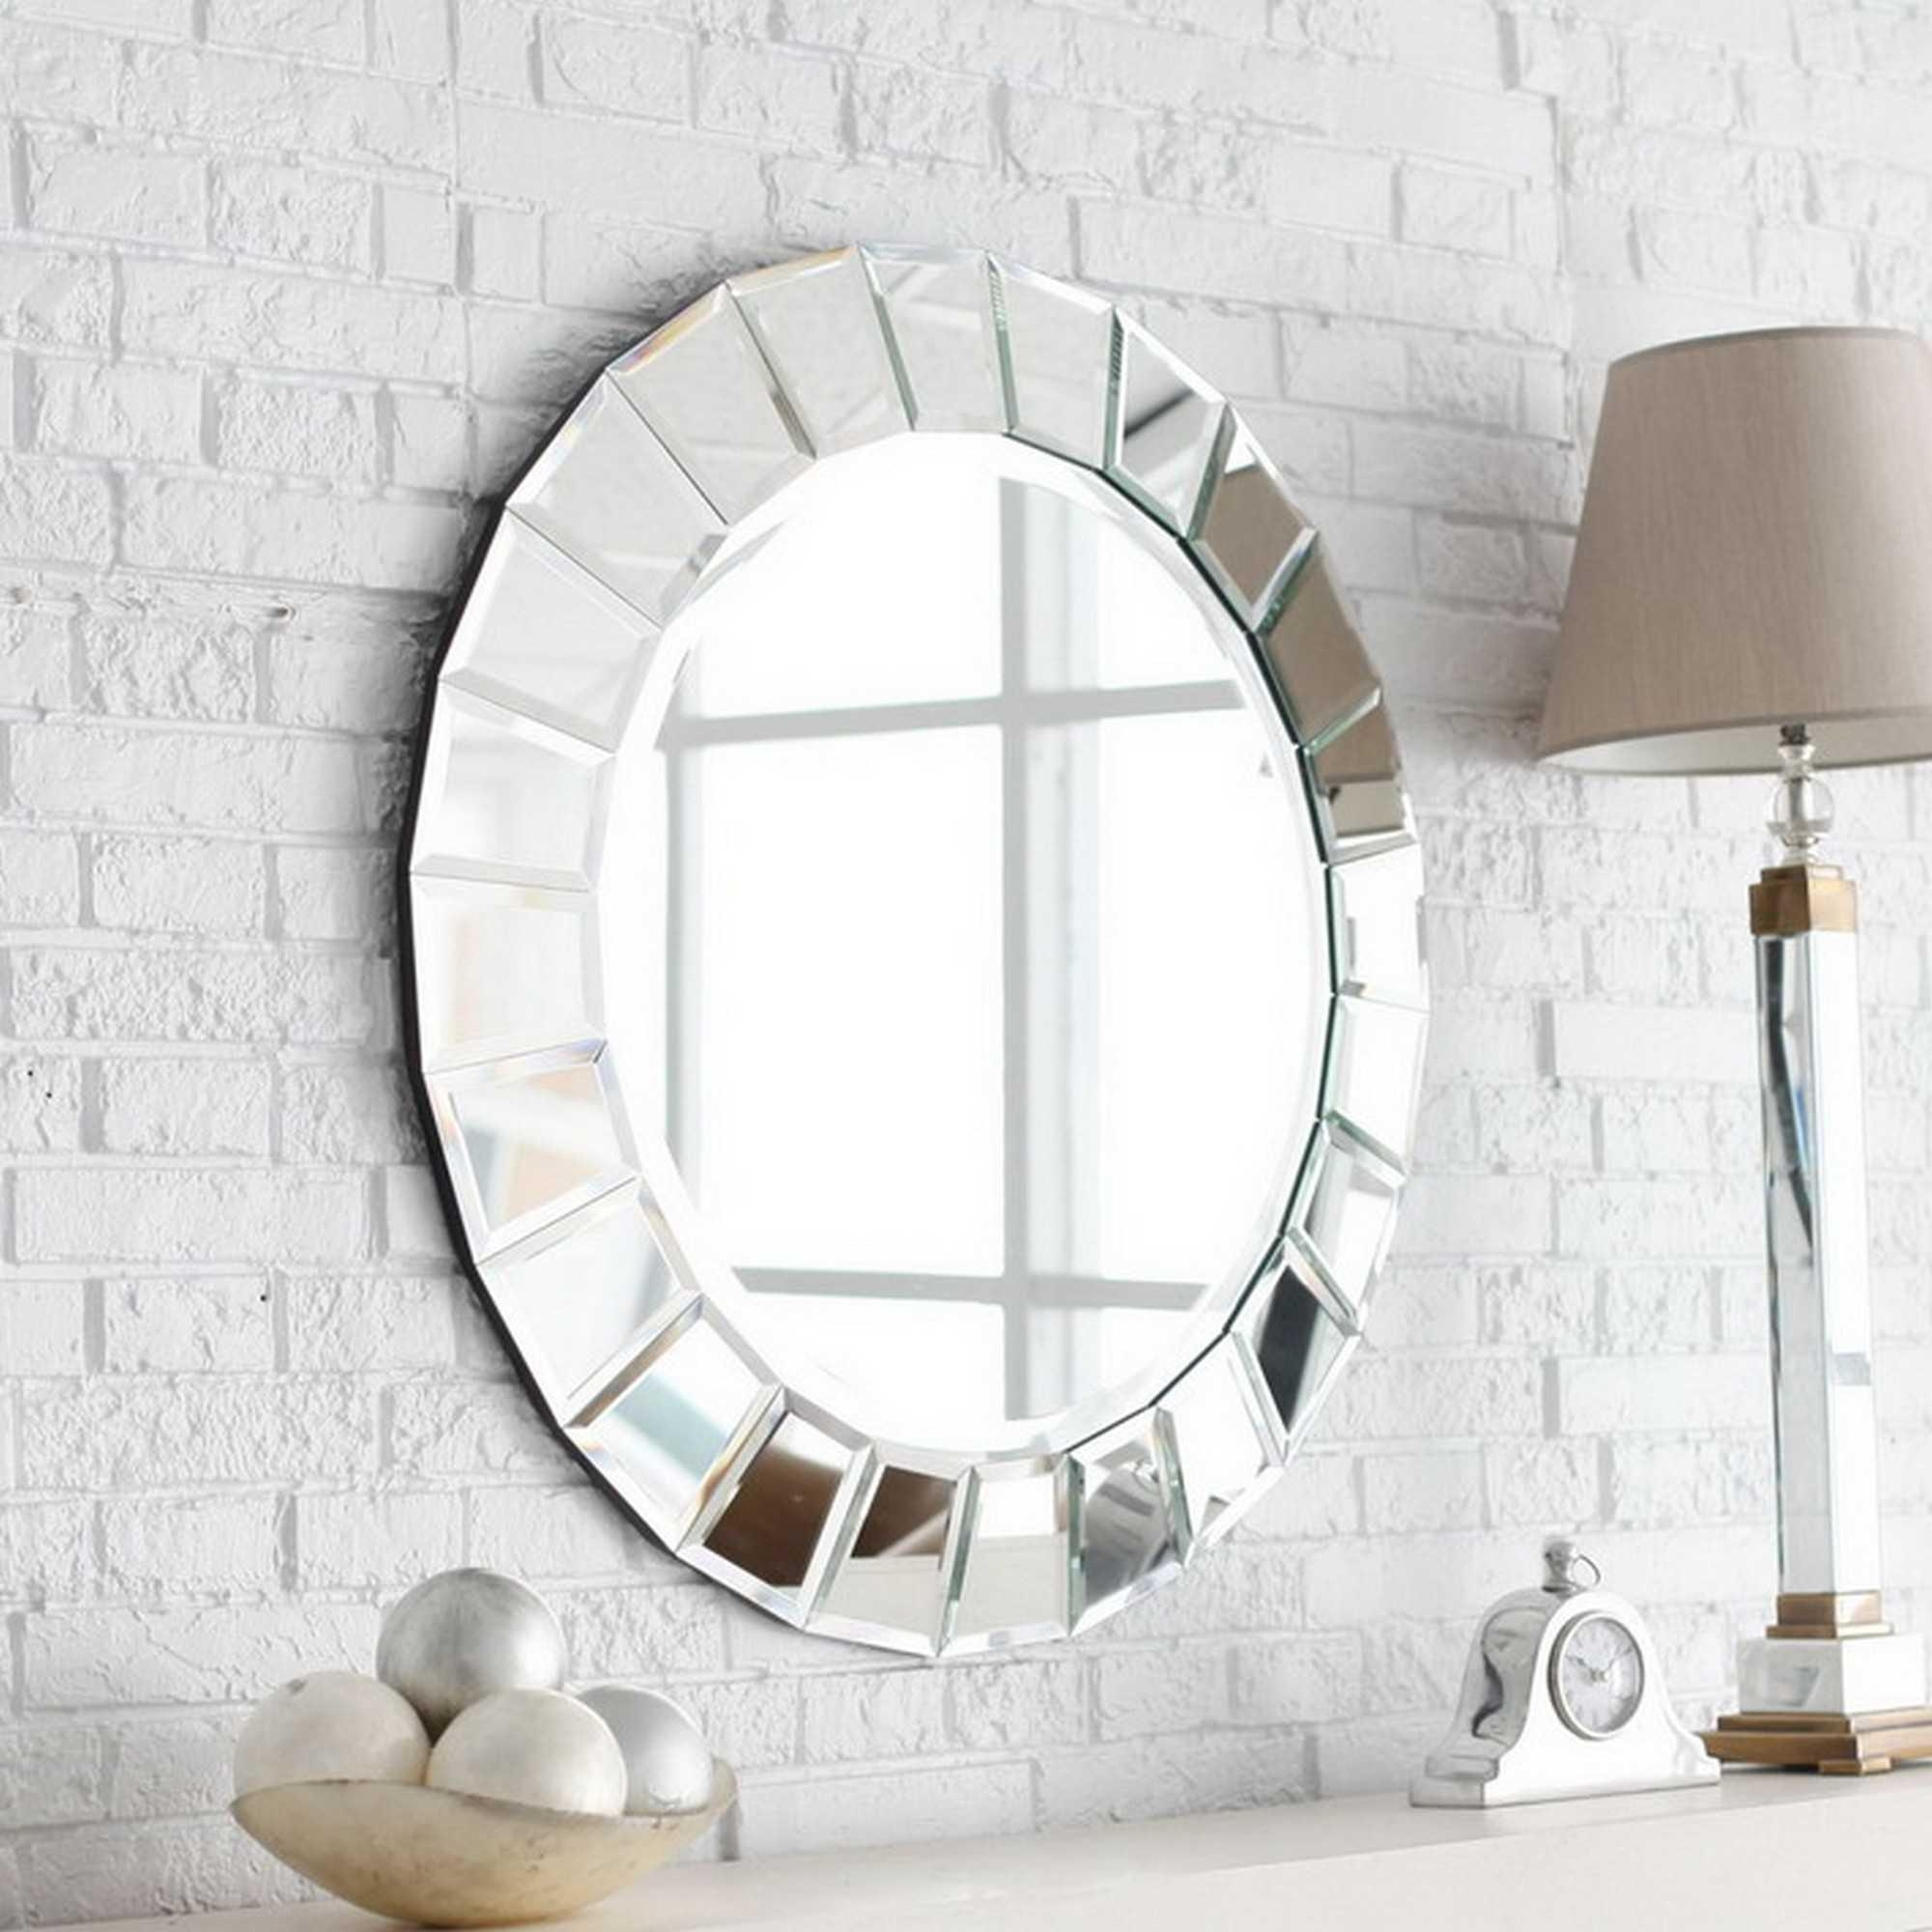 20+ Ways To Round Bathroom Mirrors In Round Mirrors For Bathroom (View 17 of 20)